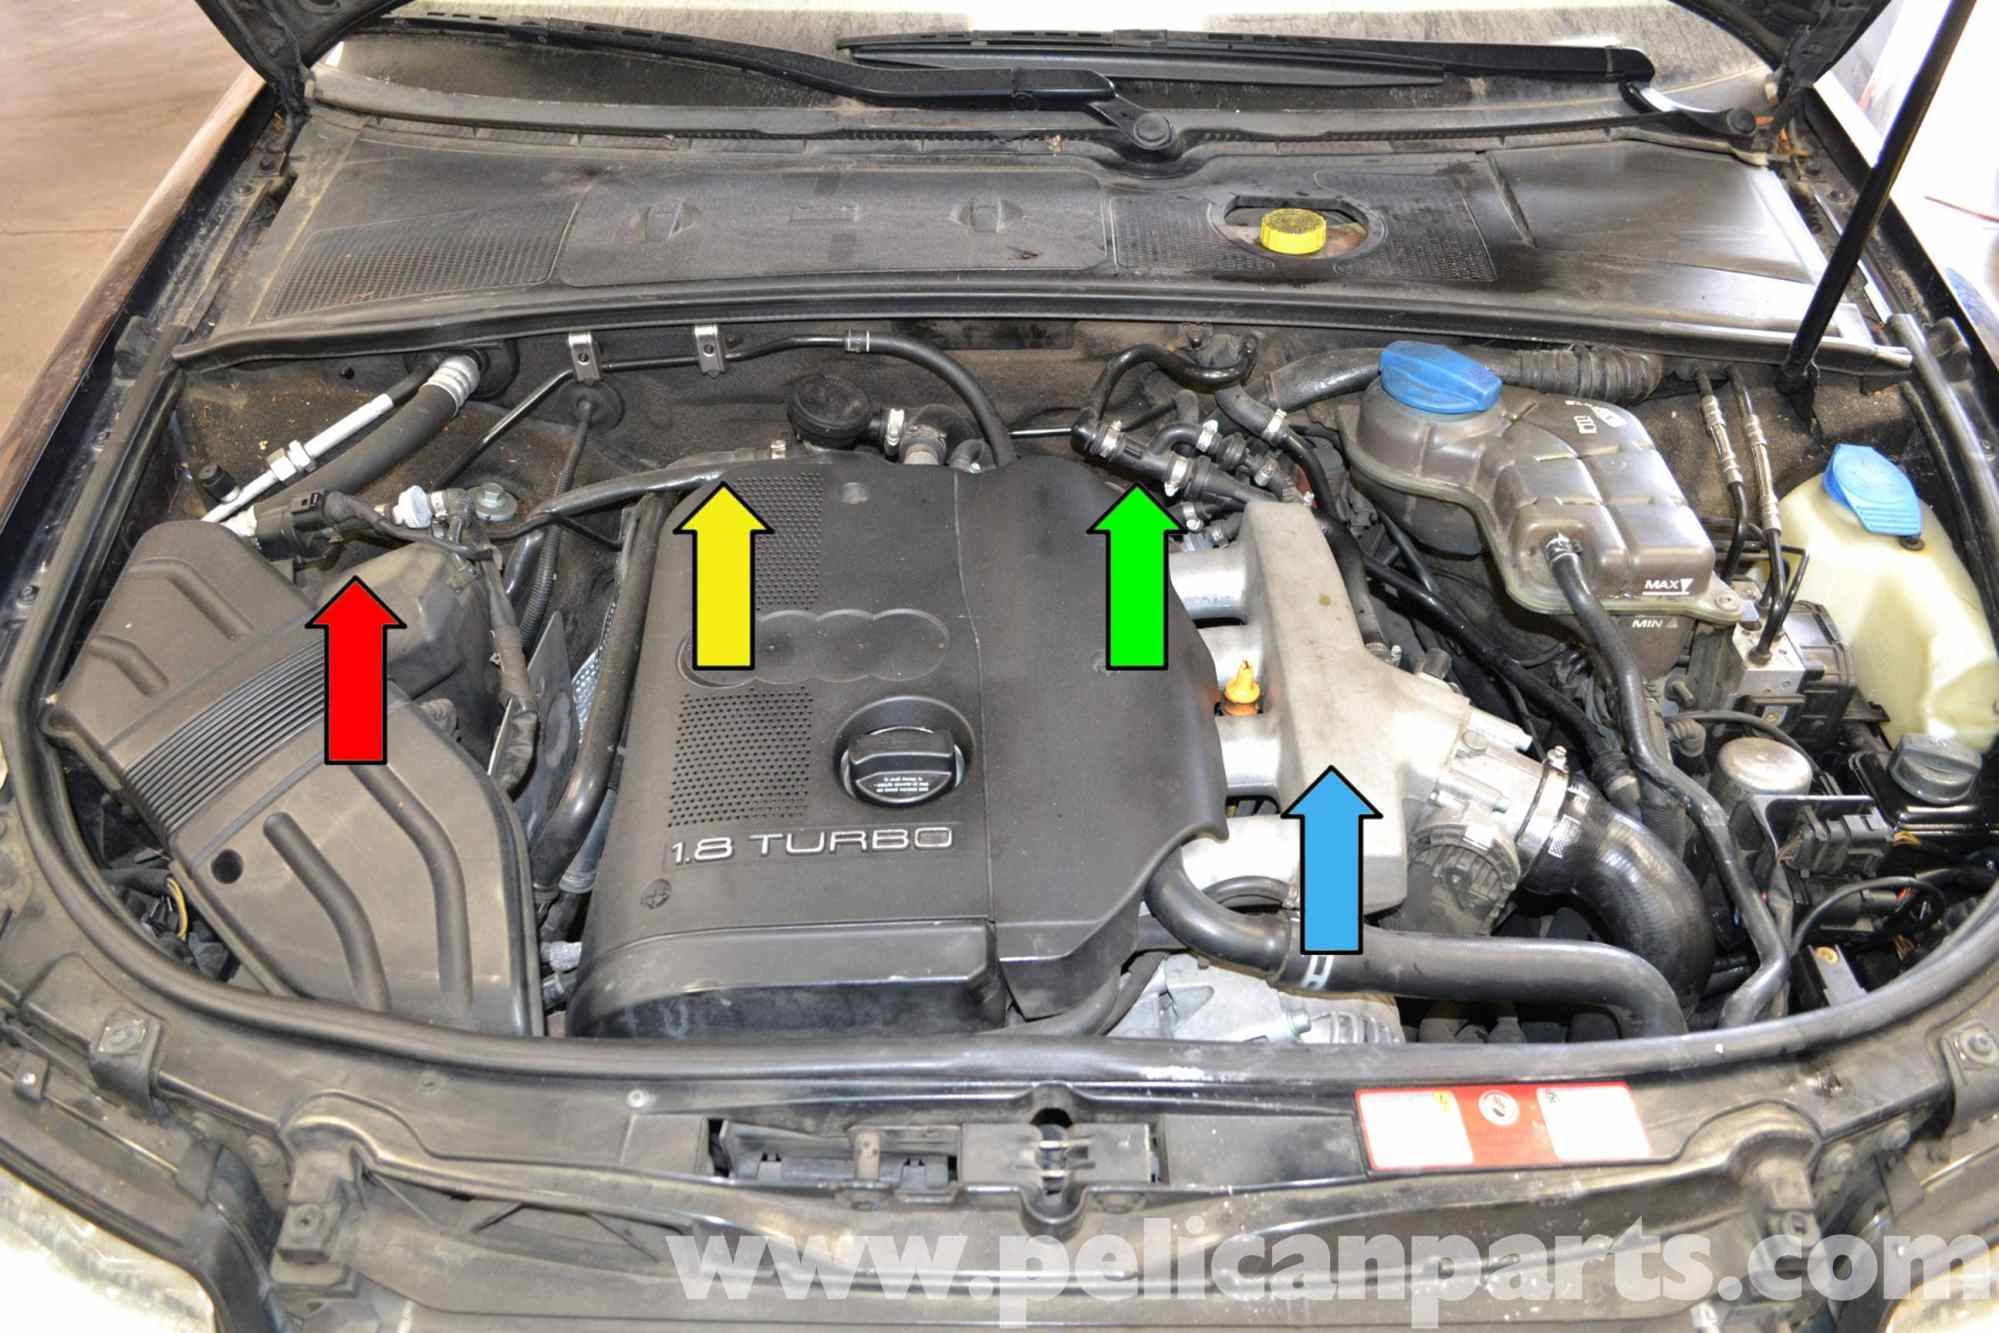 hight resolution of audi a4 b6 fixing common vacuum leaks 2002 2008 pelican parts audi a4 vacuum hose diagram on heated oxygen sensor 1 8t location